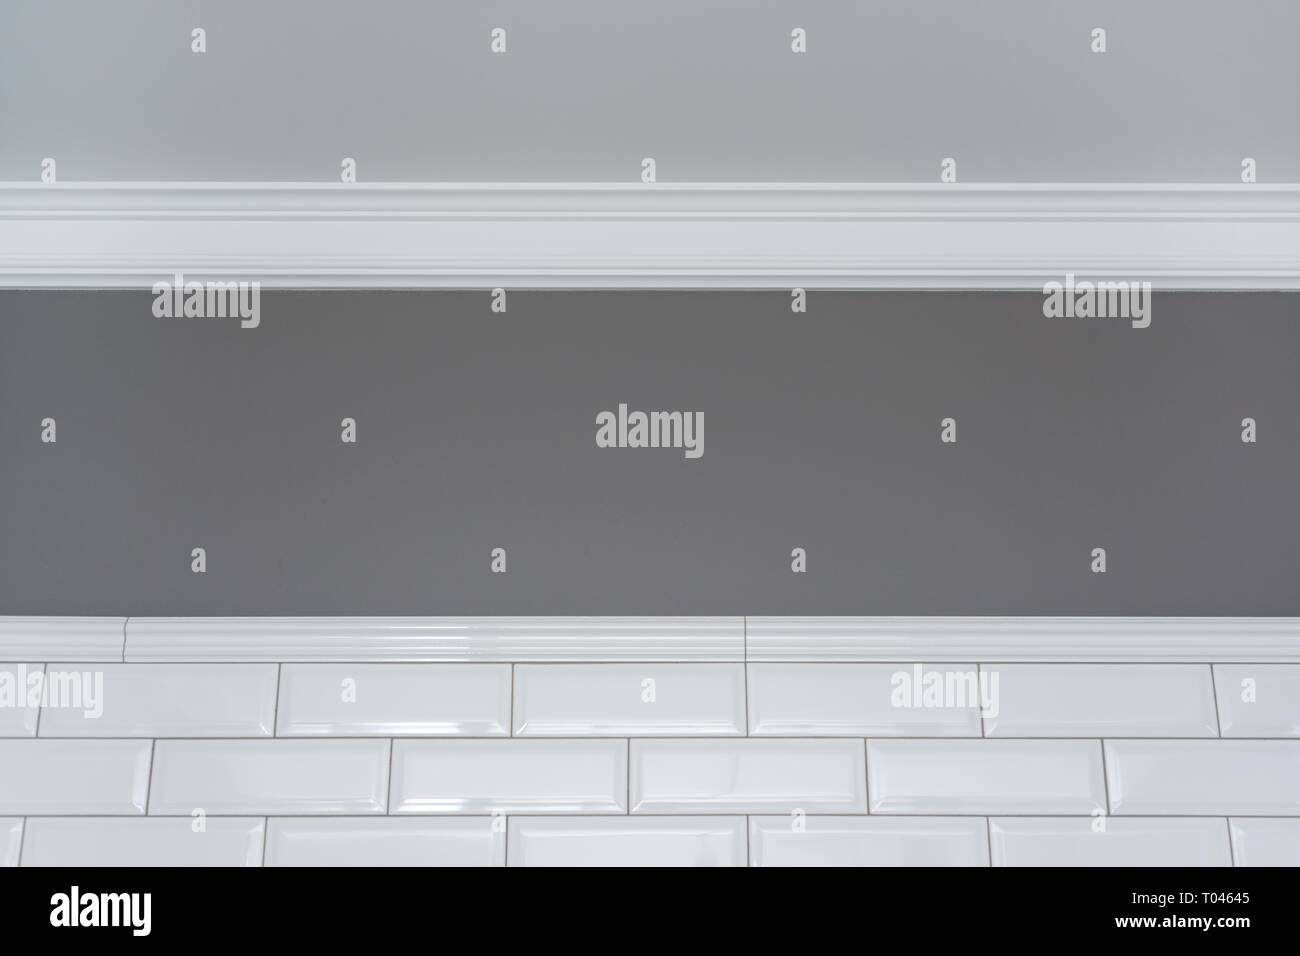 Gray Painted Wall White Ceiling Molding And Ceramic Decorative Tiles Small White Glossy Brick Fragment Of The Walls Of The Bathroom Toilet Kitchen Stock Photo Alamy